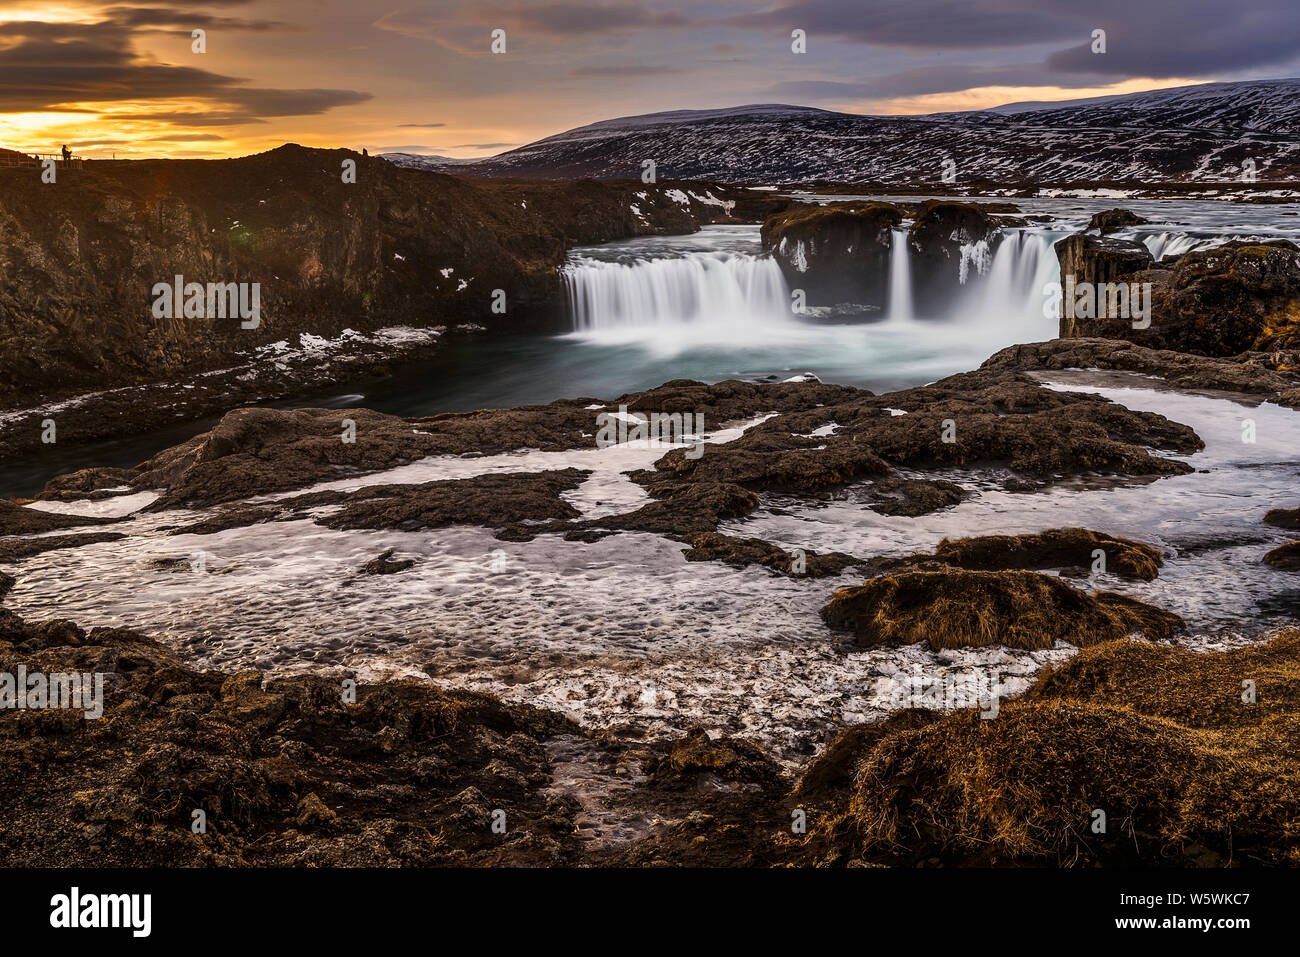 Melted glacier water flowing in frozen godafoss waterfalls at sunrise, Iceland Stock Photo